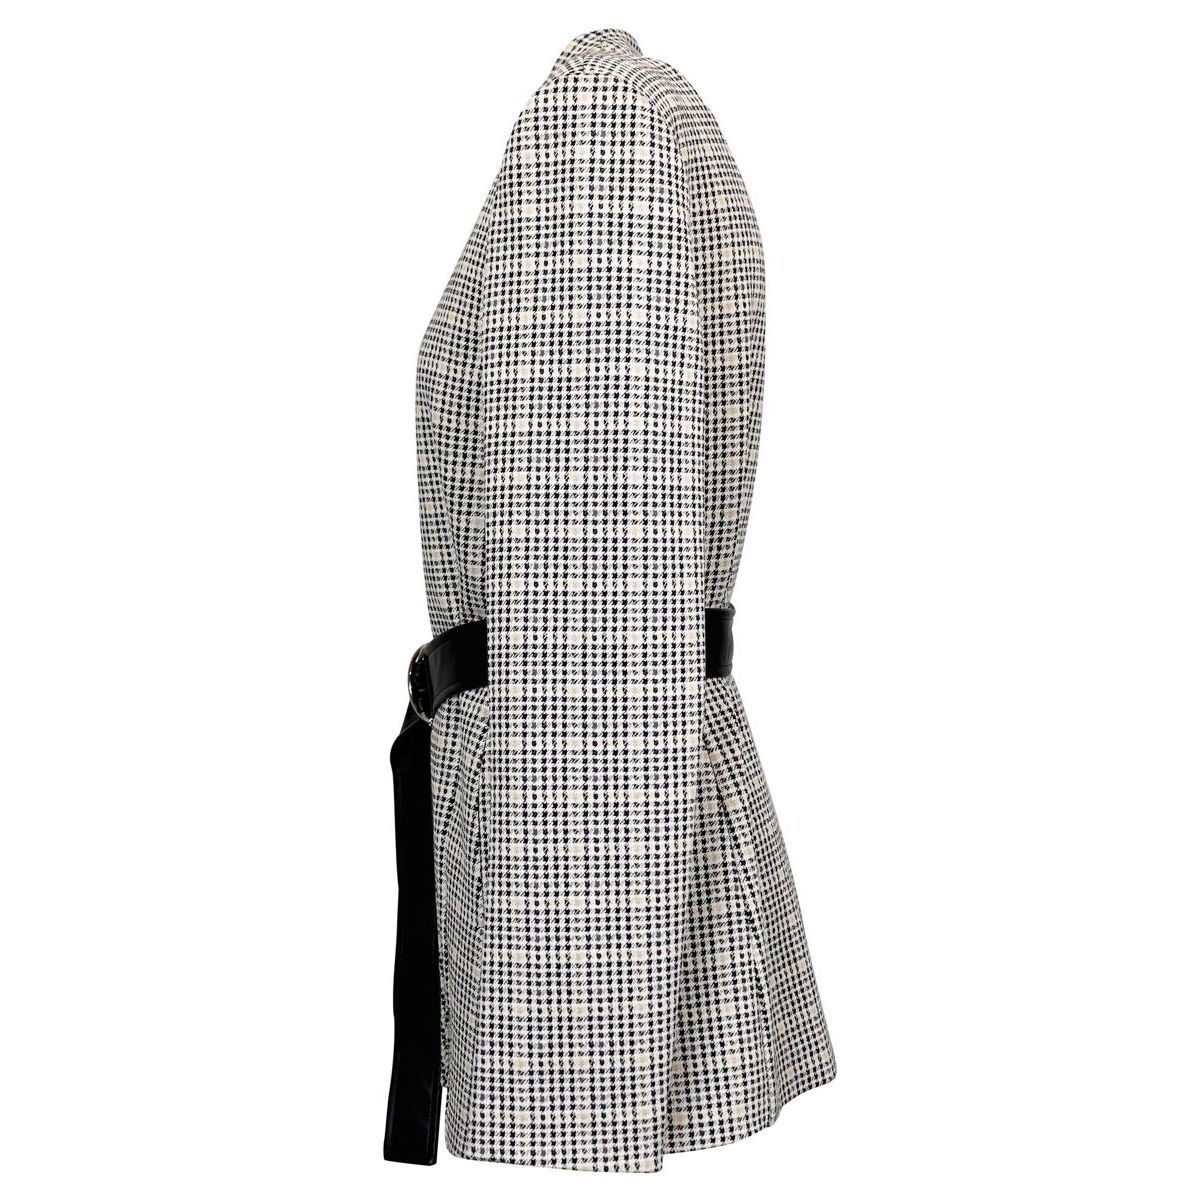 Pointed houndstooth fabric jacket with belt Black / beige Patrizia Pepe